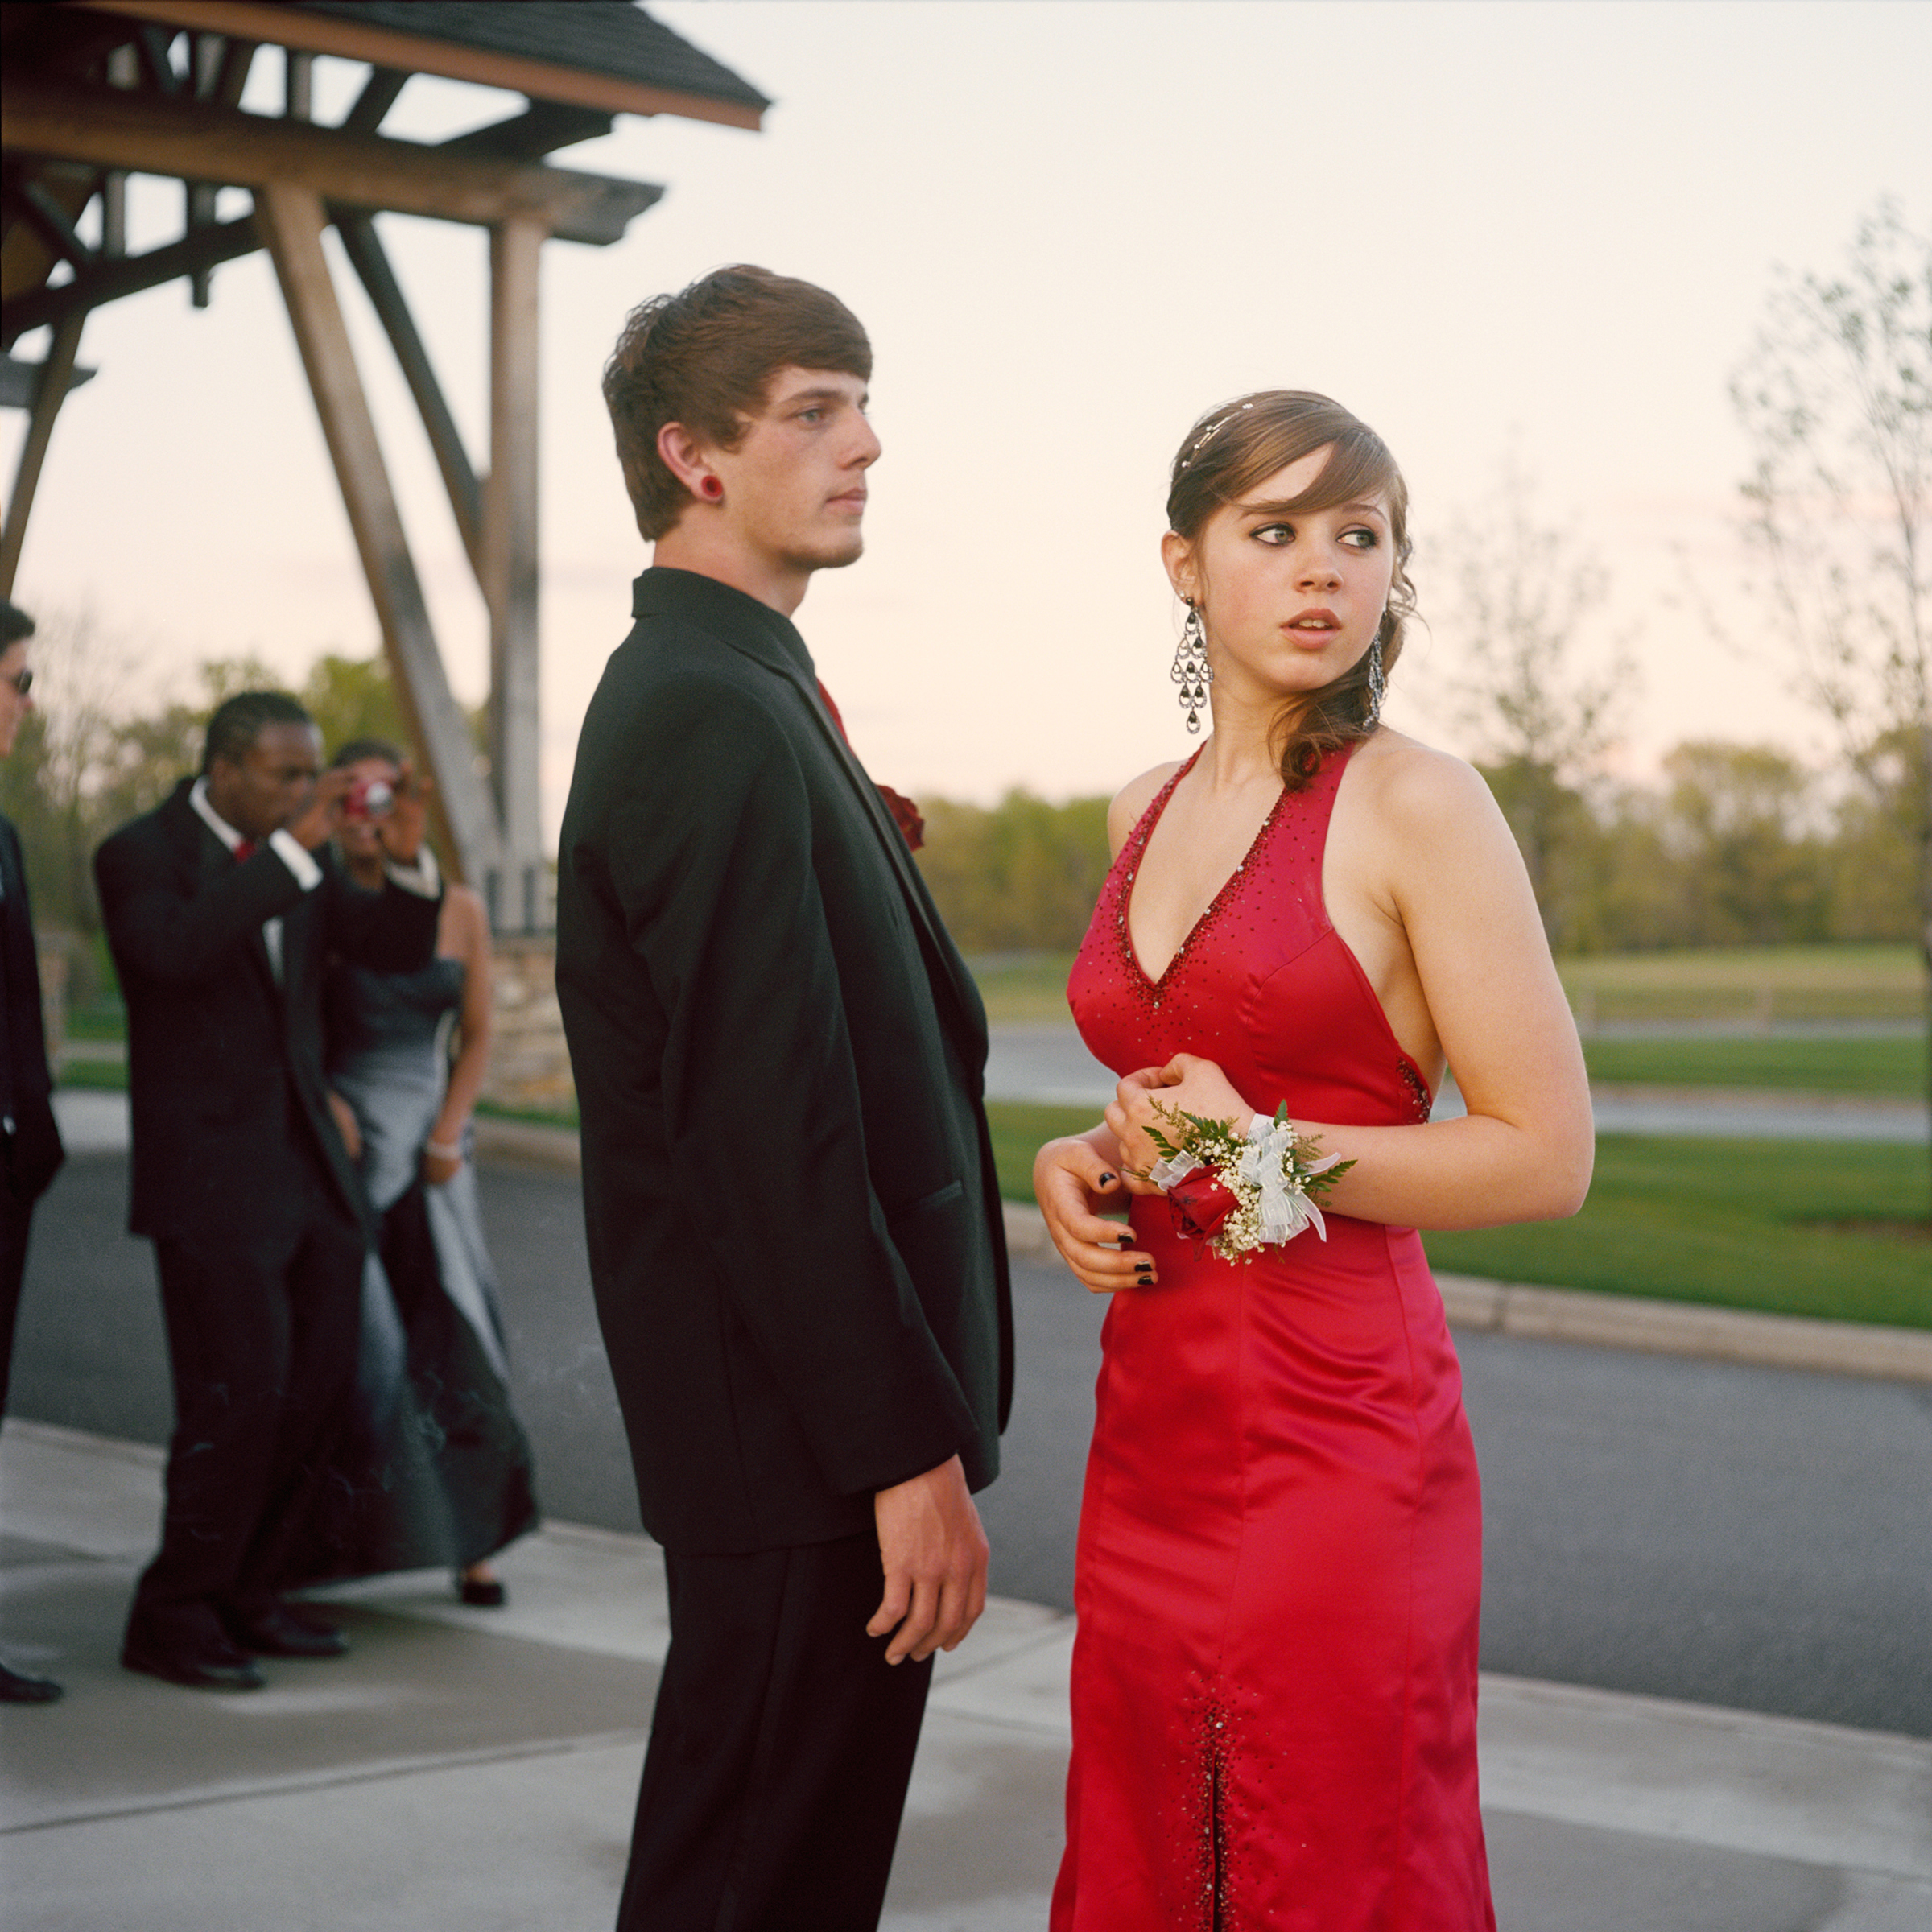 "<strong>In 2014, the average cost for a prom dress was $195, according to <a href=""http://www.statisticbrain.com/prom-night-statistics/"" title=""Statistic Brain"" target=""_blank"">Seventeen Magazine</a>. On top of this, a teen girl's prom expenses include shoes, handbag, hair, makeup, manicure and jewelry.  However, teen boys are often expected to bear the costs for many prom activities, and the average costs of a limousine for four hours can be $450 and prom tickets can be $75.  This excludes his tuxedo, accessories, their dinner and transportation. For help making a budget, get the <a href=""http://www.practicalmoneyskills.com/resources/prom2014.php"" title=""Visa Plan'it Prom app"" target=""_blank"">Visa Plan'it Prom app</a>.</strong>                                                                      Title: ""Nick and Angel,"" from the series <em><a href=""http://amyandersonart.com/crossroads.htm"" title=""At Risk, With Promise"" target=""_blank"">At Risk, With Promise.</a></em>                                                                      <a href=""http://amyandersonart.com/"" title=""Amy Anderson"" target=""_blank"">Amy Anderson</a> has been documenting students at Crossroads Alternative High School for the last four years. Coming from diverse backgrounds, they have been unable to be successful in a traditional school setting for various reasons. Some are brilliant, kind, articulate teenagers; some are abused, addicted, angry youth…many are both. Though they carry the wounds and fears of their past, her portraits honor the strength that develops as they begin a new journey and make changes and choices that will shape their lives."